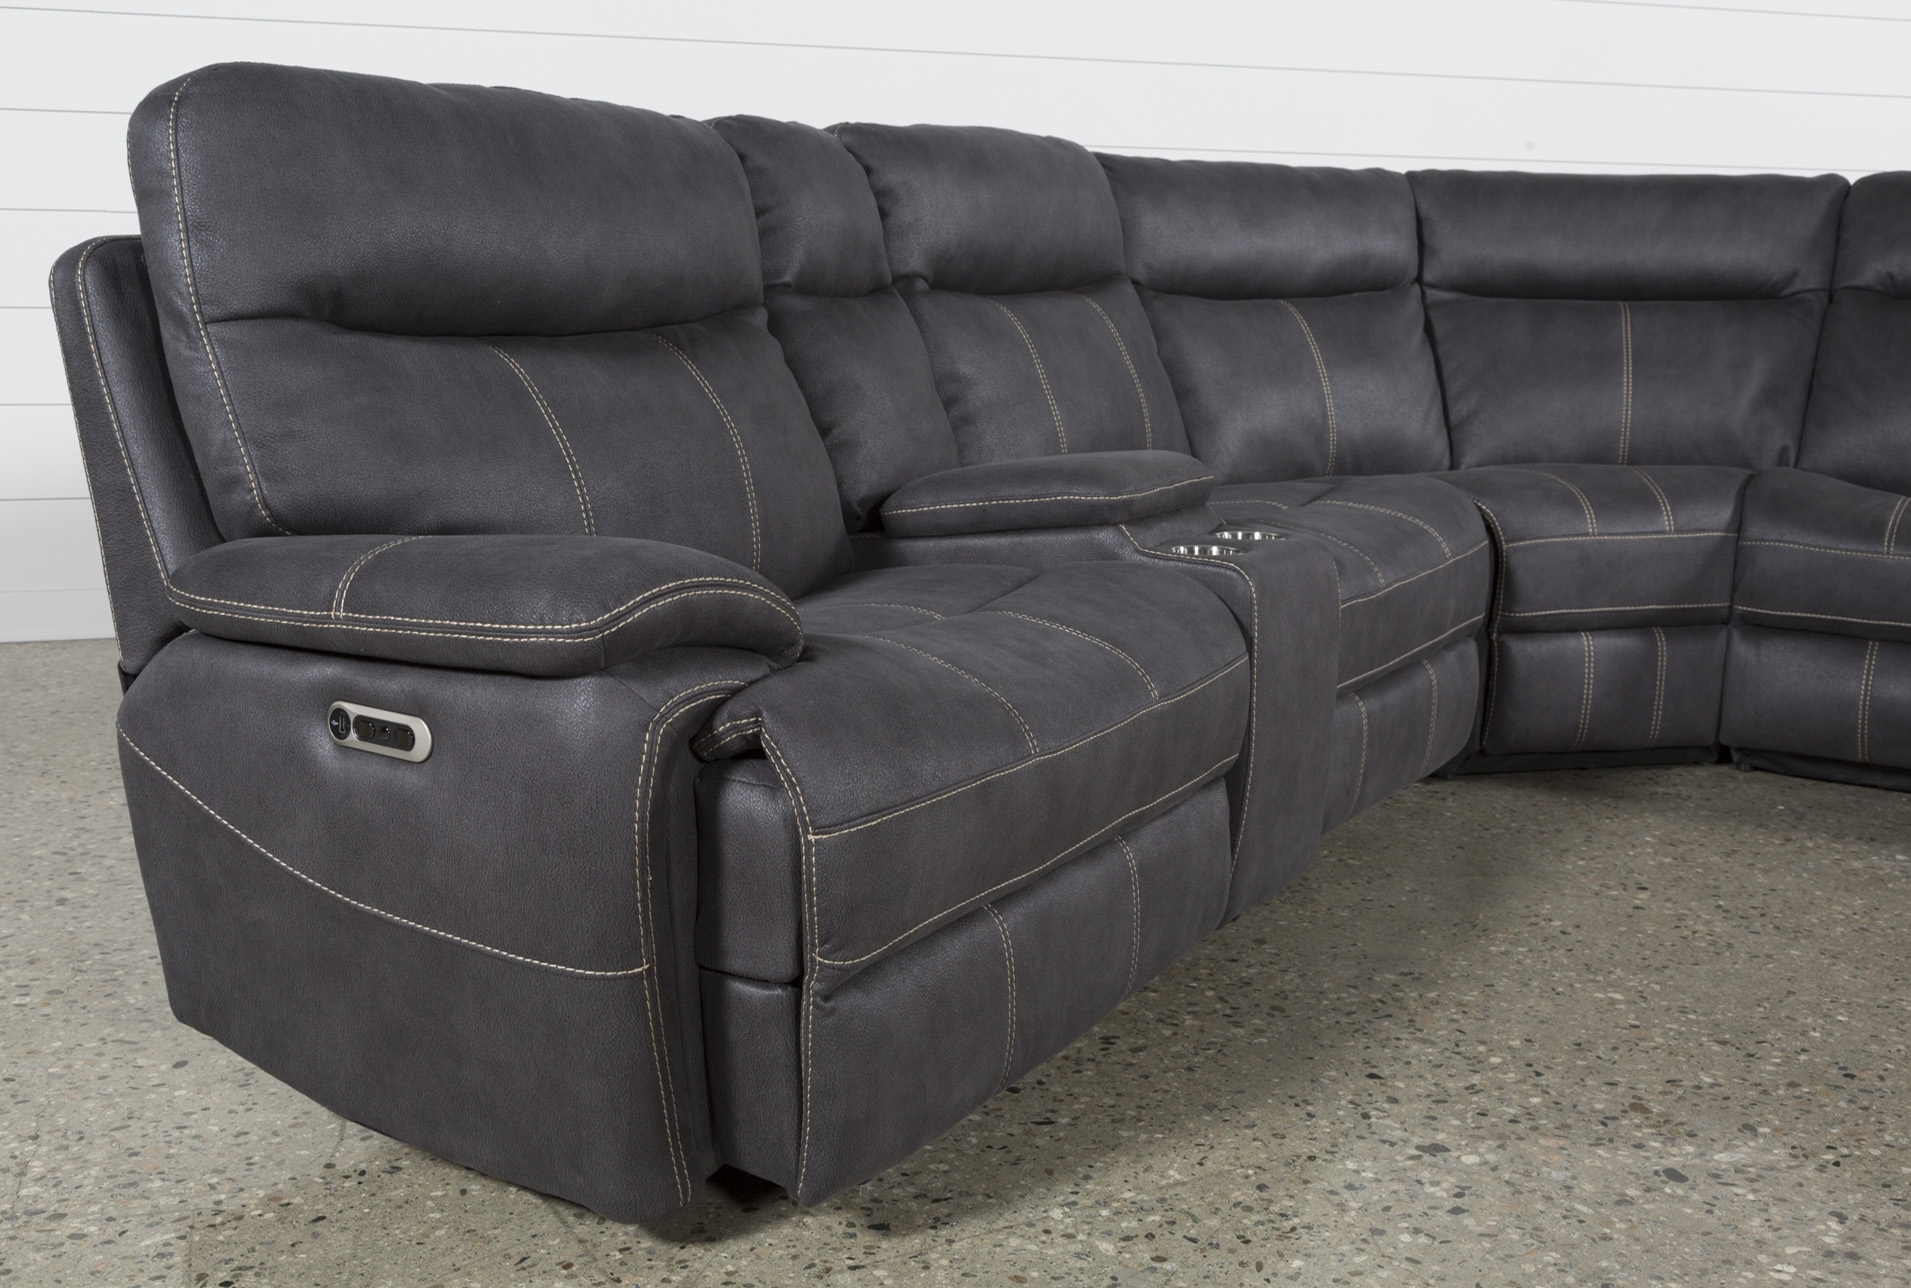 Denali Charcoal Grey 6 Piece Reclining Sectional W/2 Power Headrests pertaining to Waylon 3 Piece Power Reclining Sectionals (Image 7 of 30)